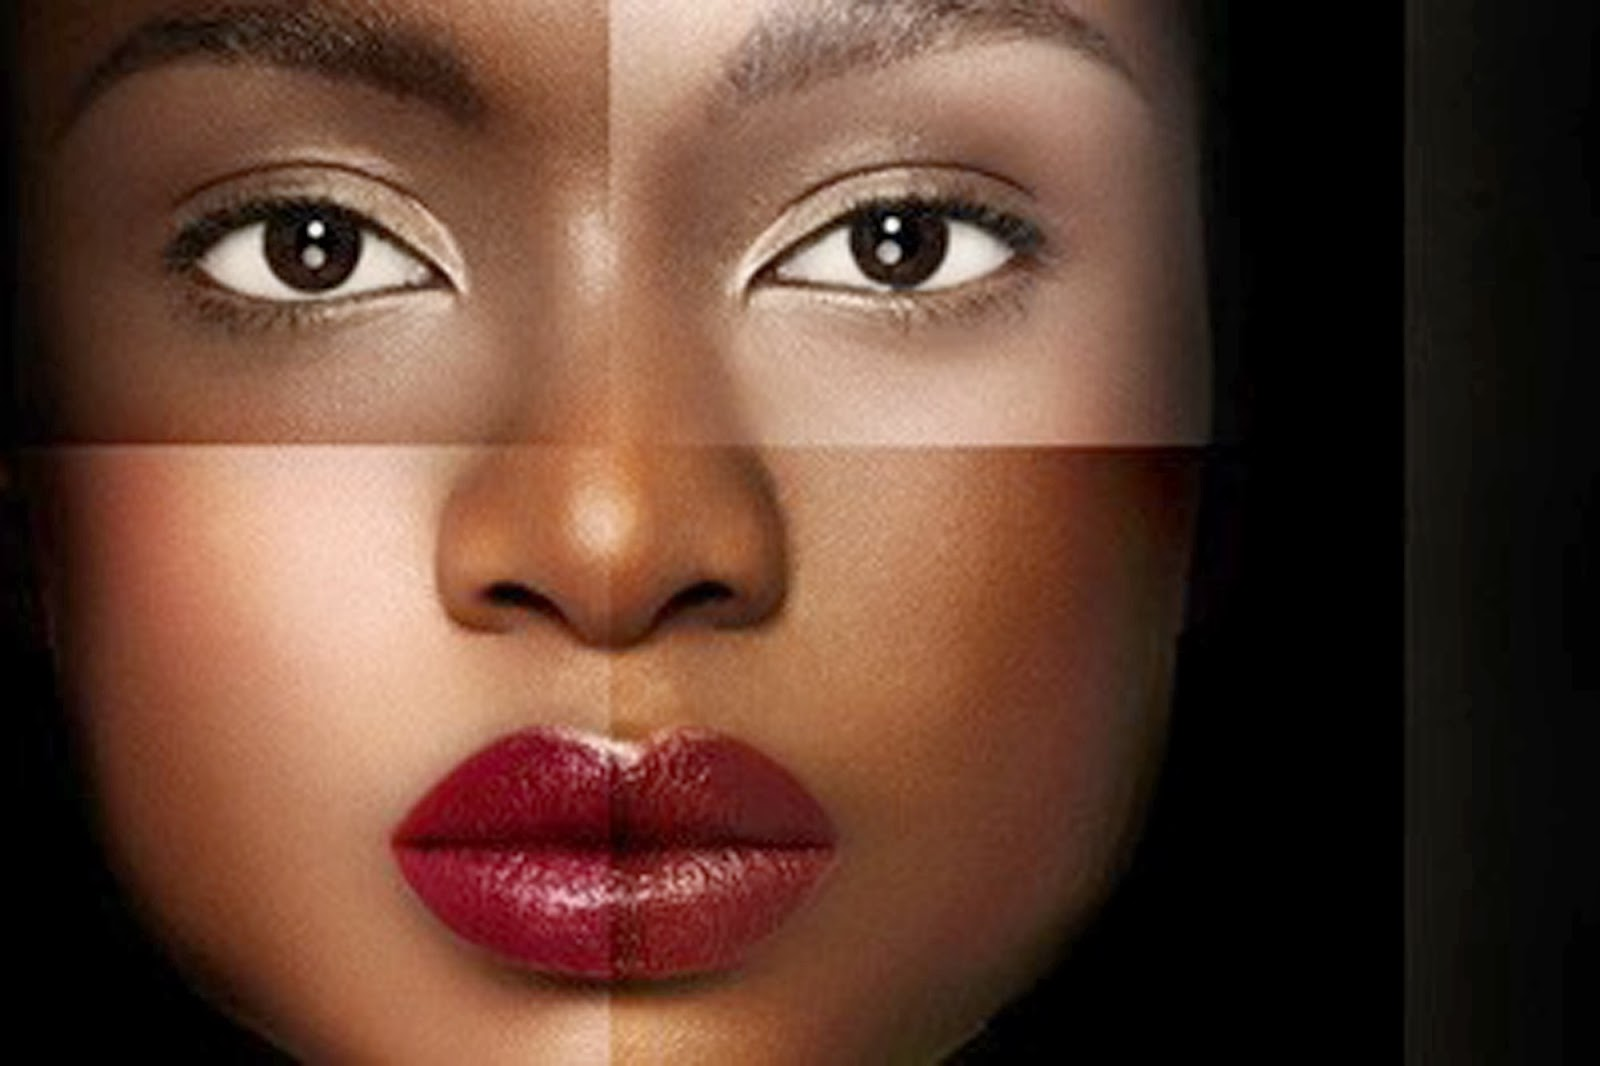 the racial prejudice found between those with light skin and those with dark skin When a person hears the word prejudice, he or she might think it only refers to the racial prejudice often found between those with light skin and those with dark skin however, prejudice runs much deeper than a person's color prejudice is found between gender, religion, cultural and geographical background, and race.